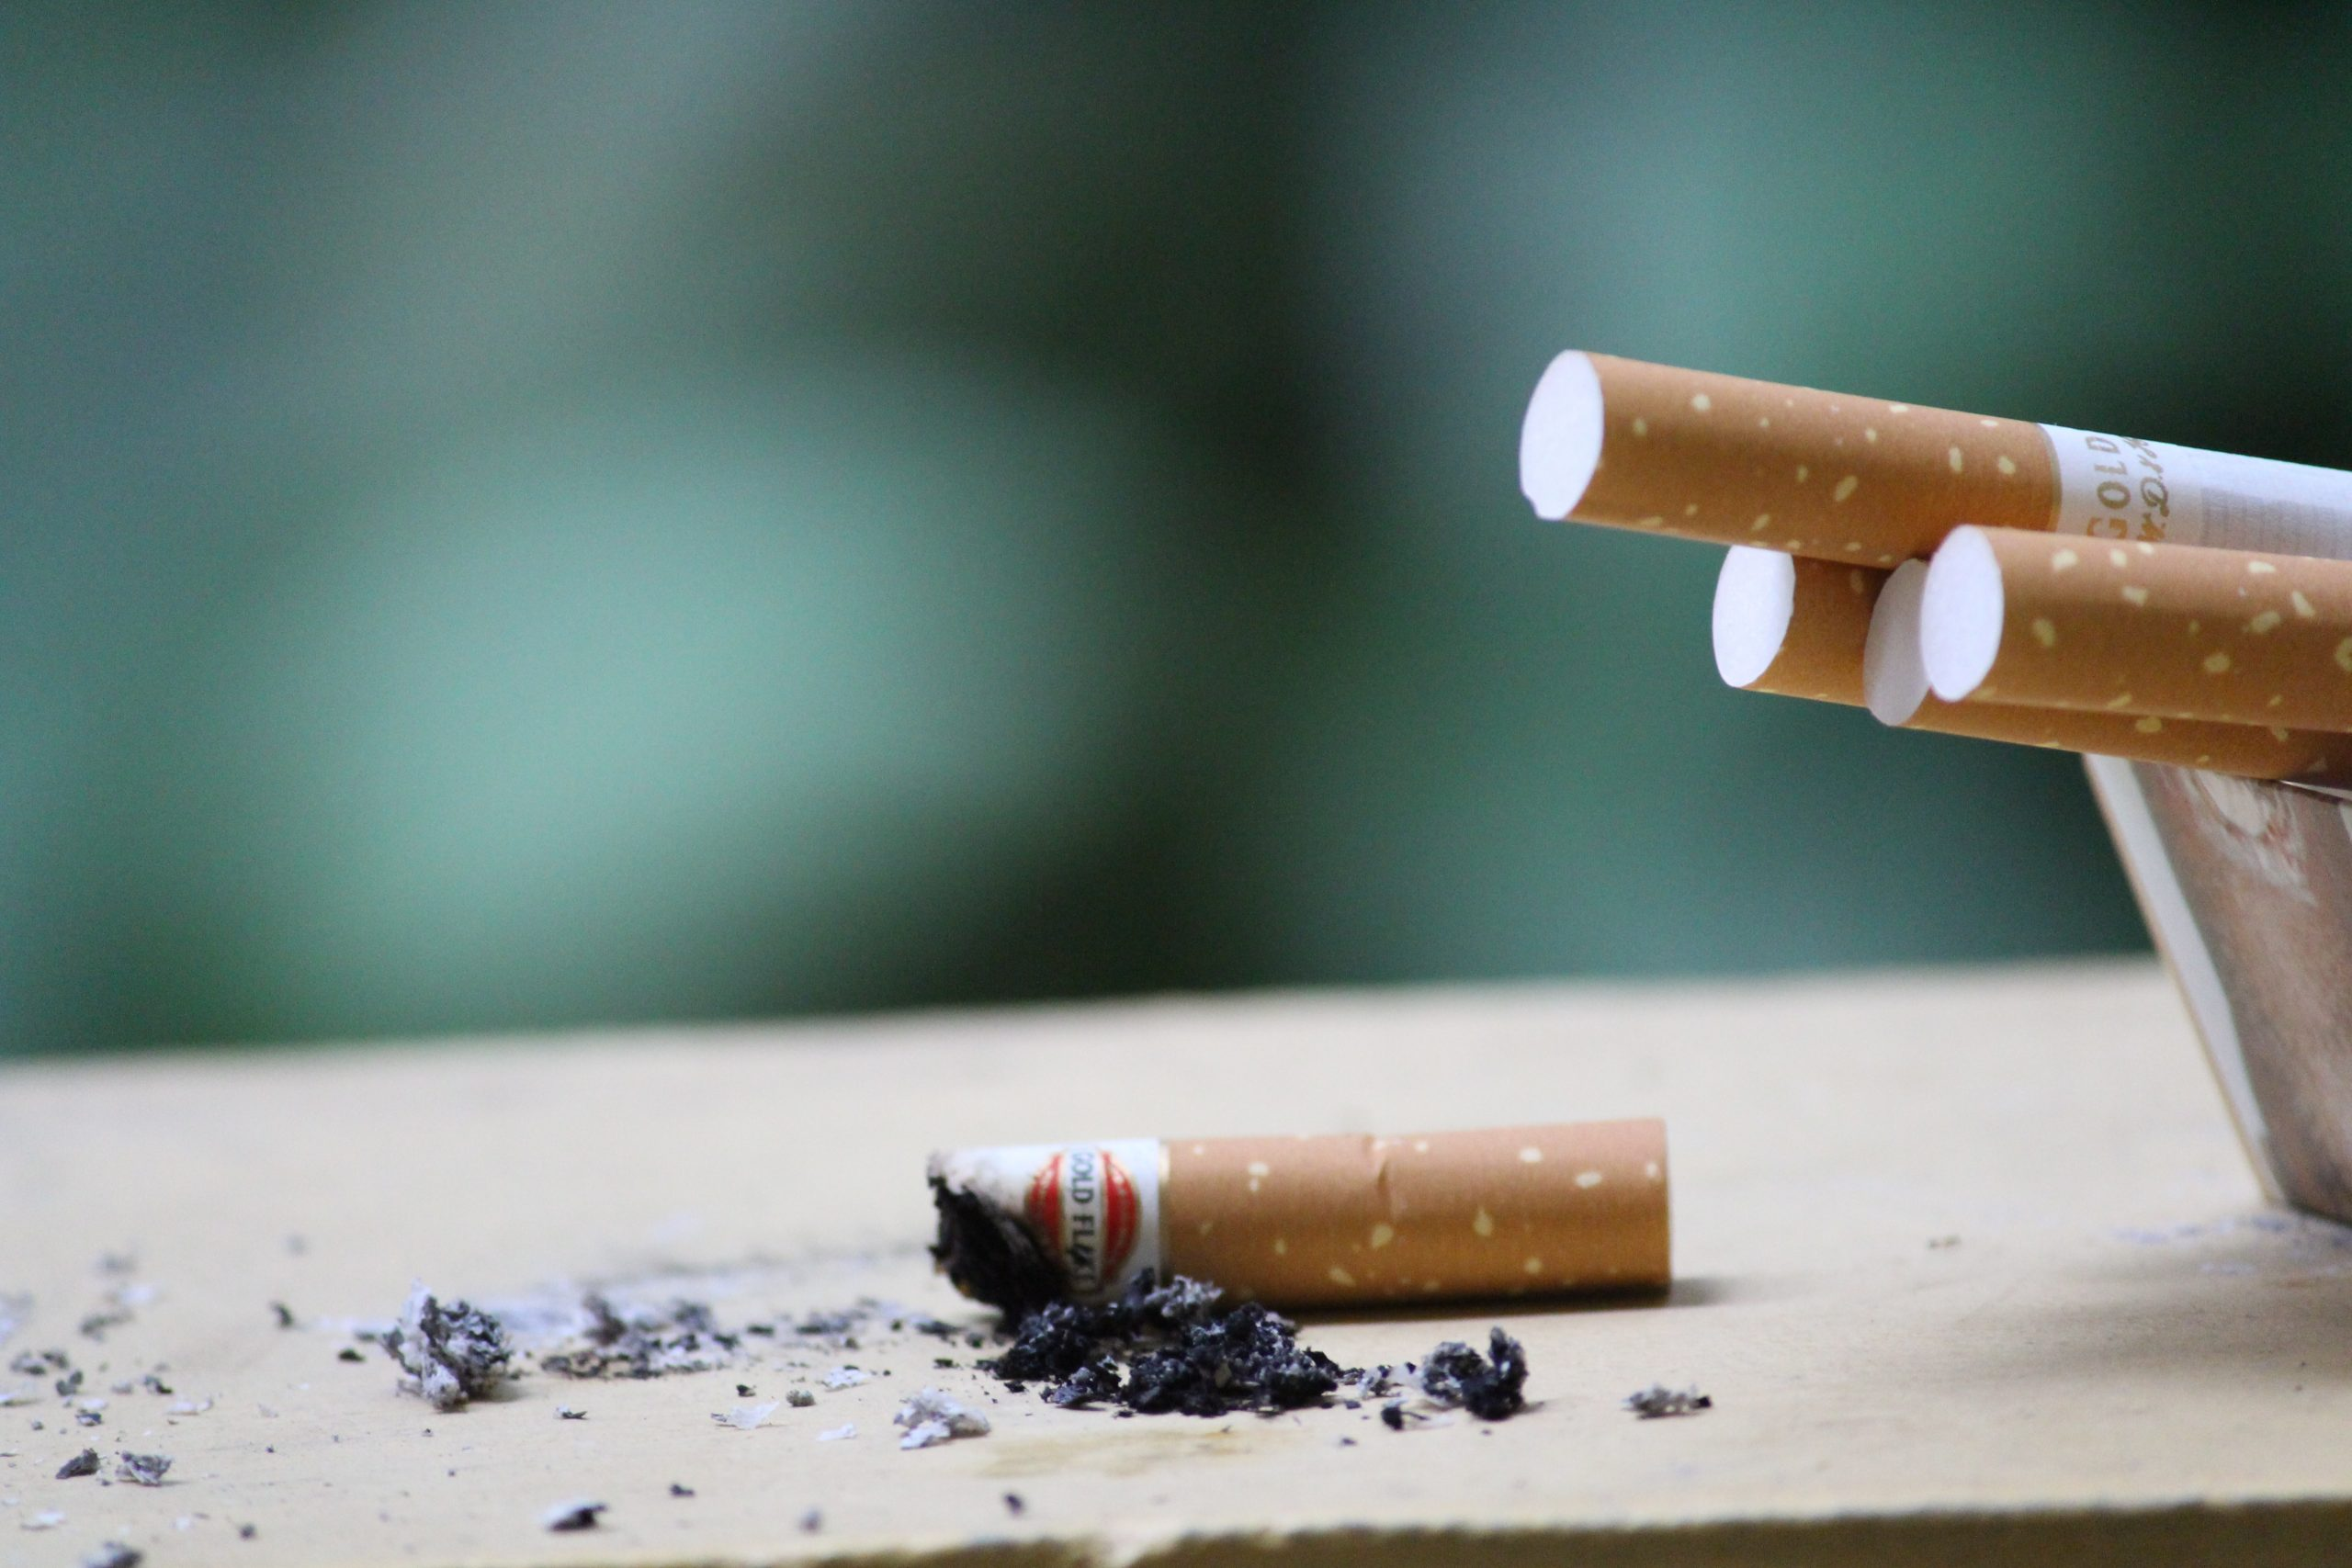 Cigarette. Coronavirus: Smokers warned to quit or risk contracting deadly bug